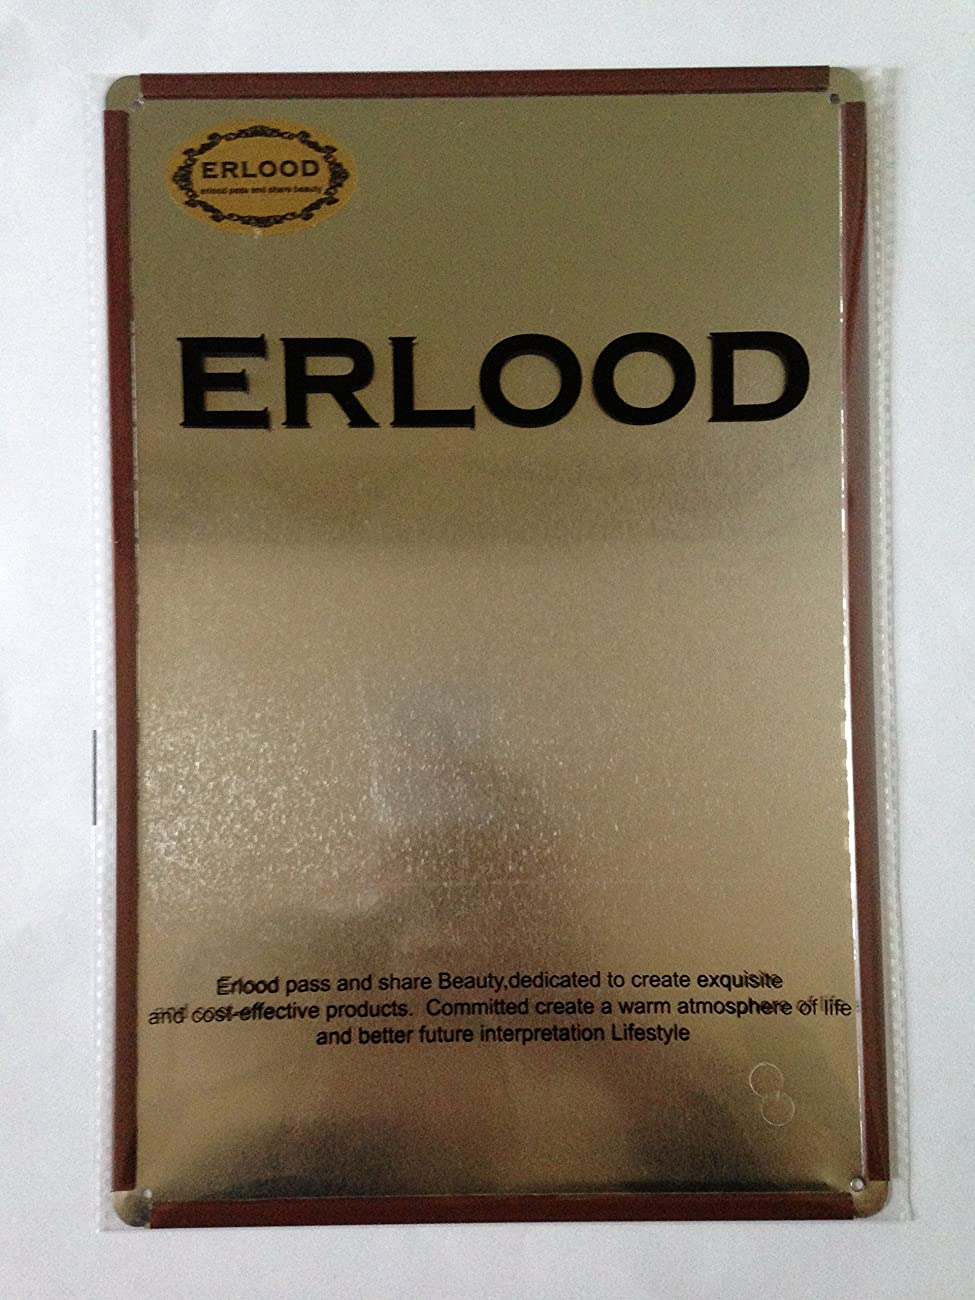 ERLOOD Motorcycle Retro Vintage Decor Metal Tin Sign 12 X 8 1